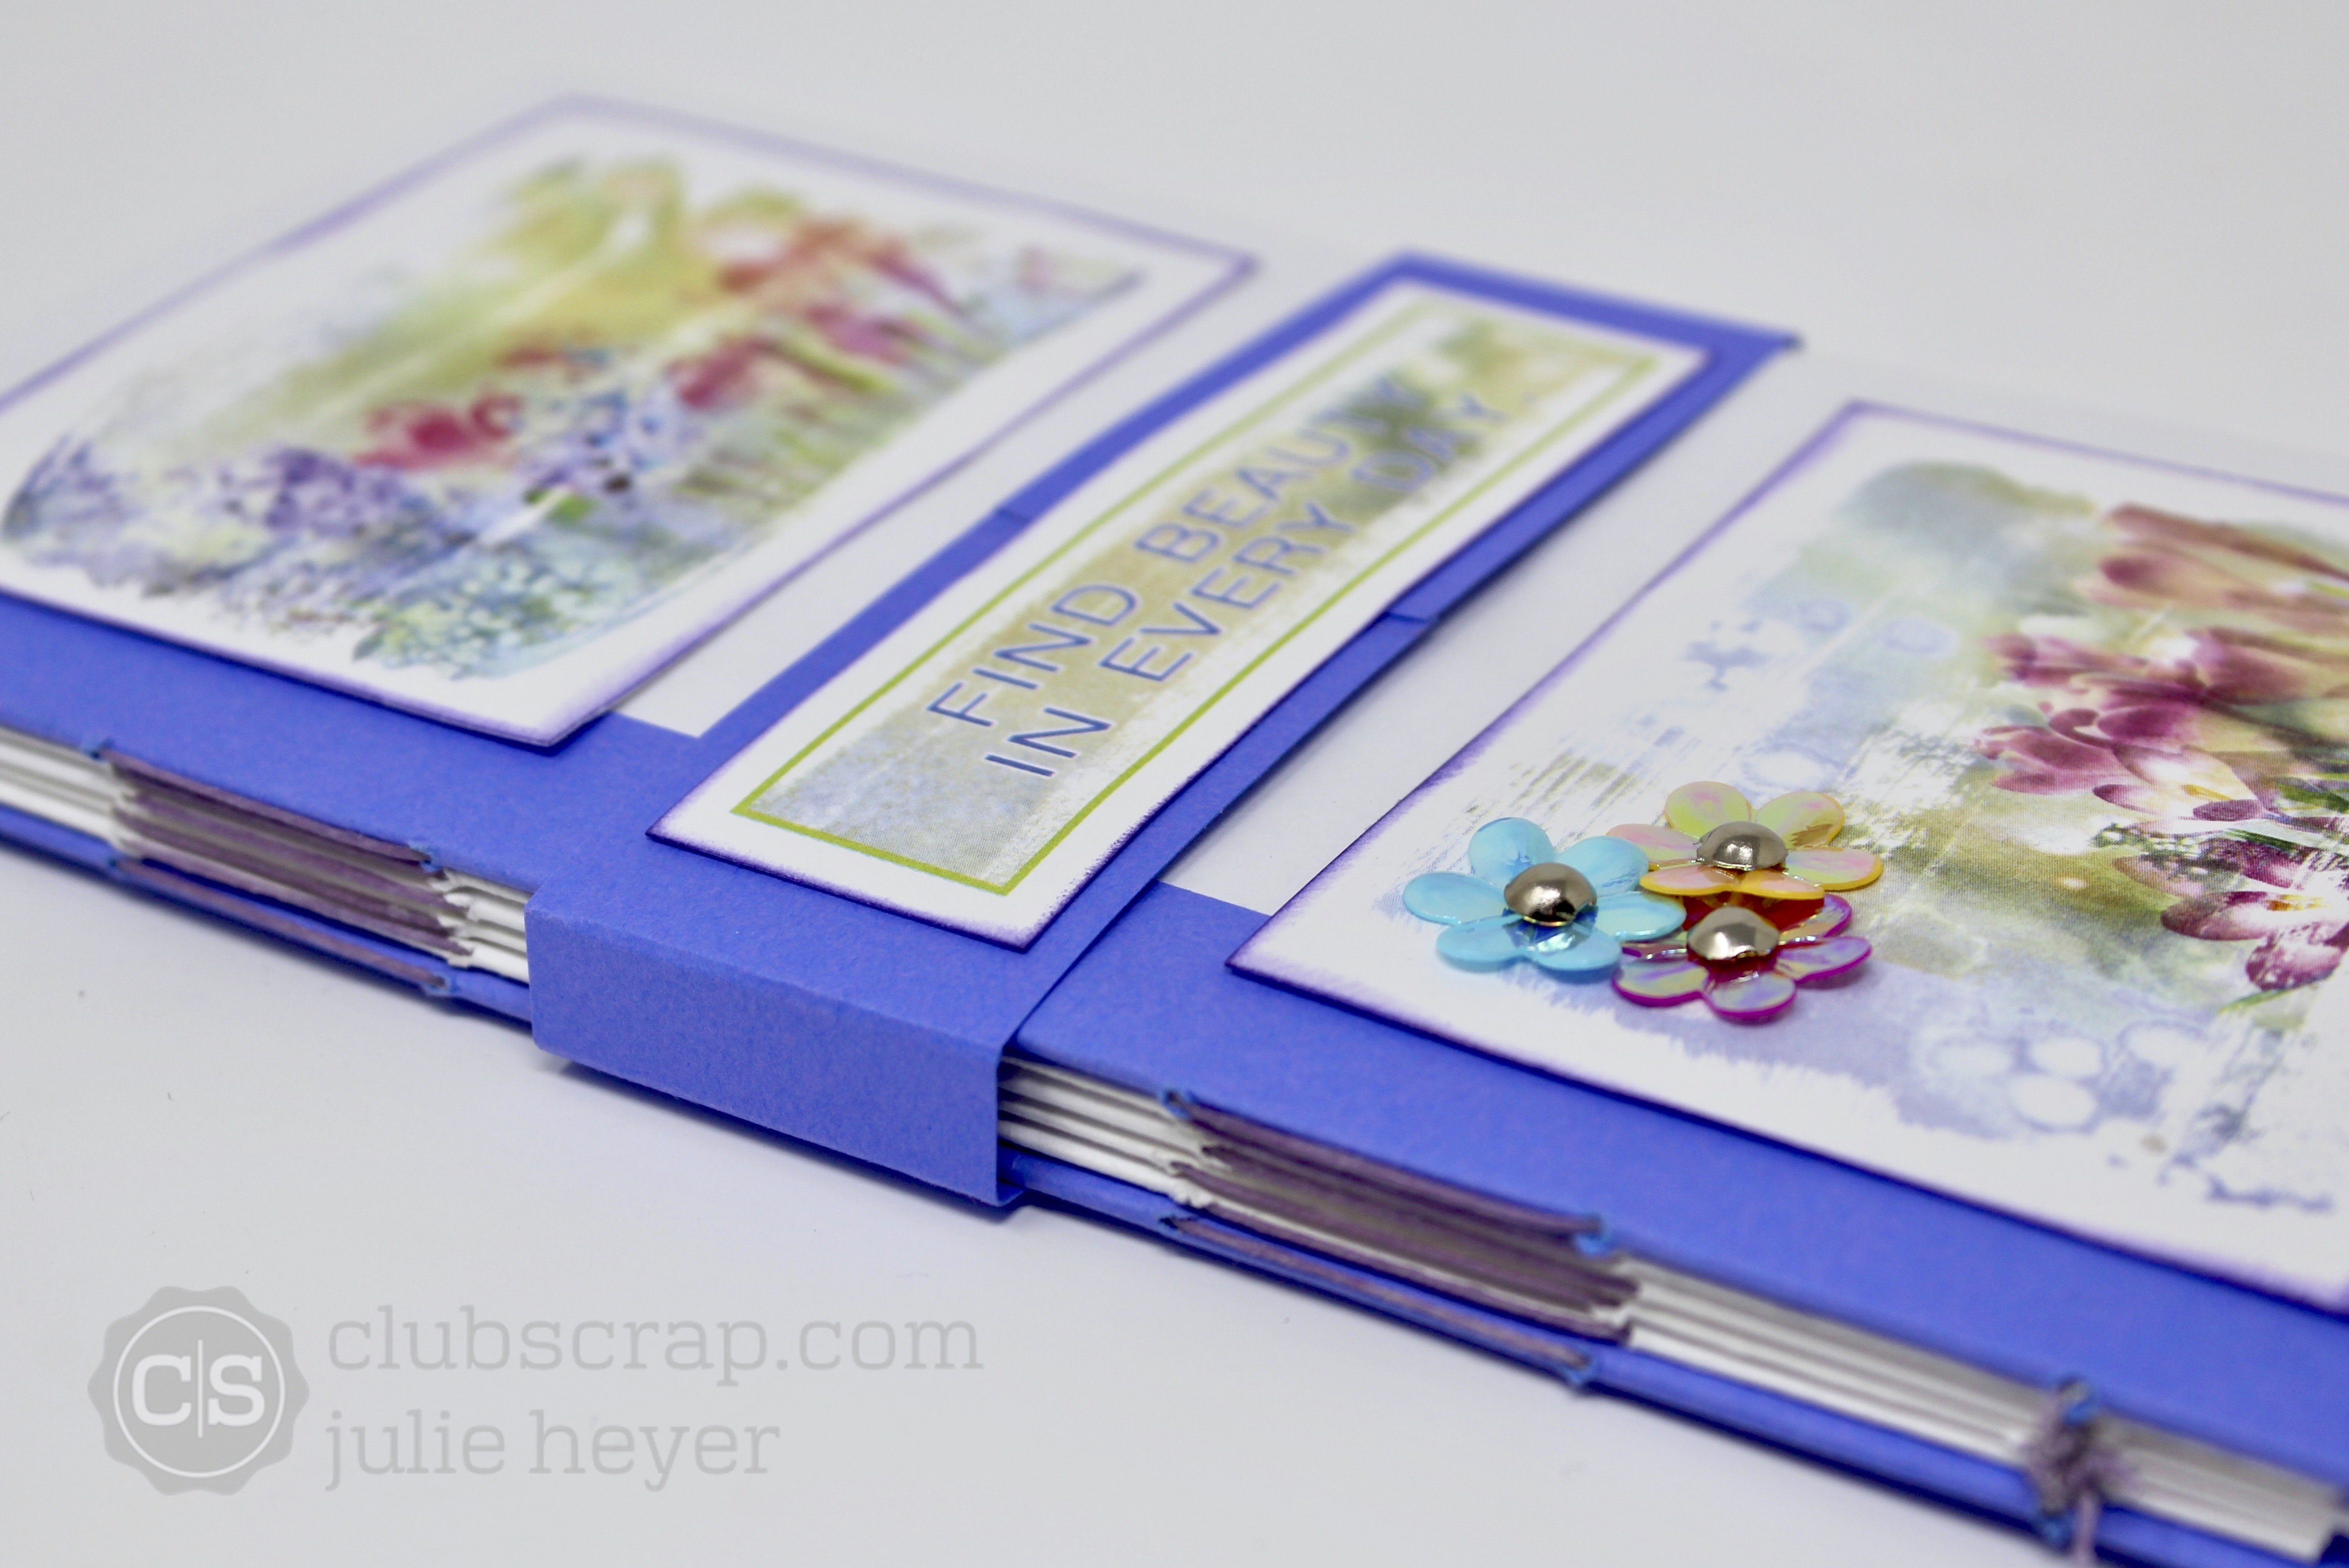 Gate Fold Cards Album - Get creative with Julie!